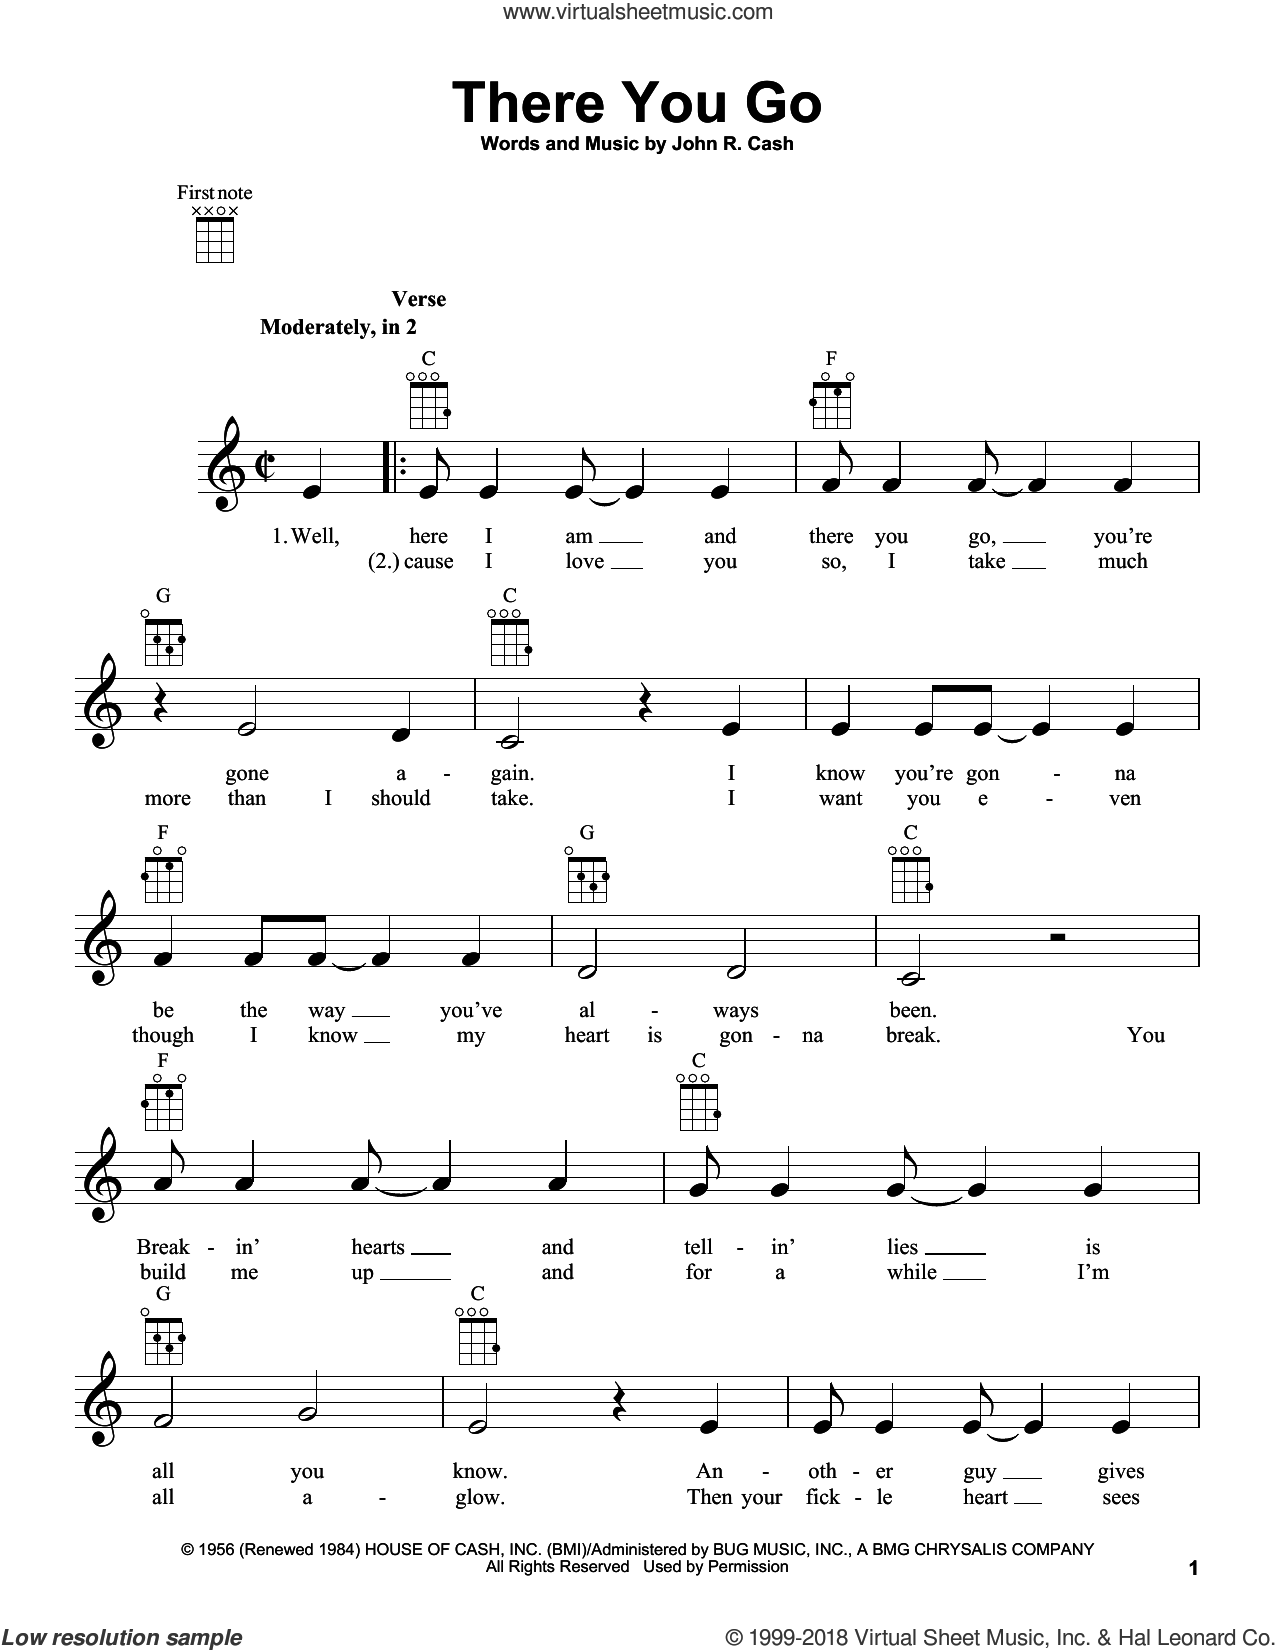 There You Go sheet music for ukulele by Johnny Cash, intermediate skill level